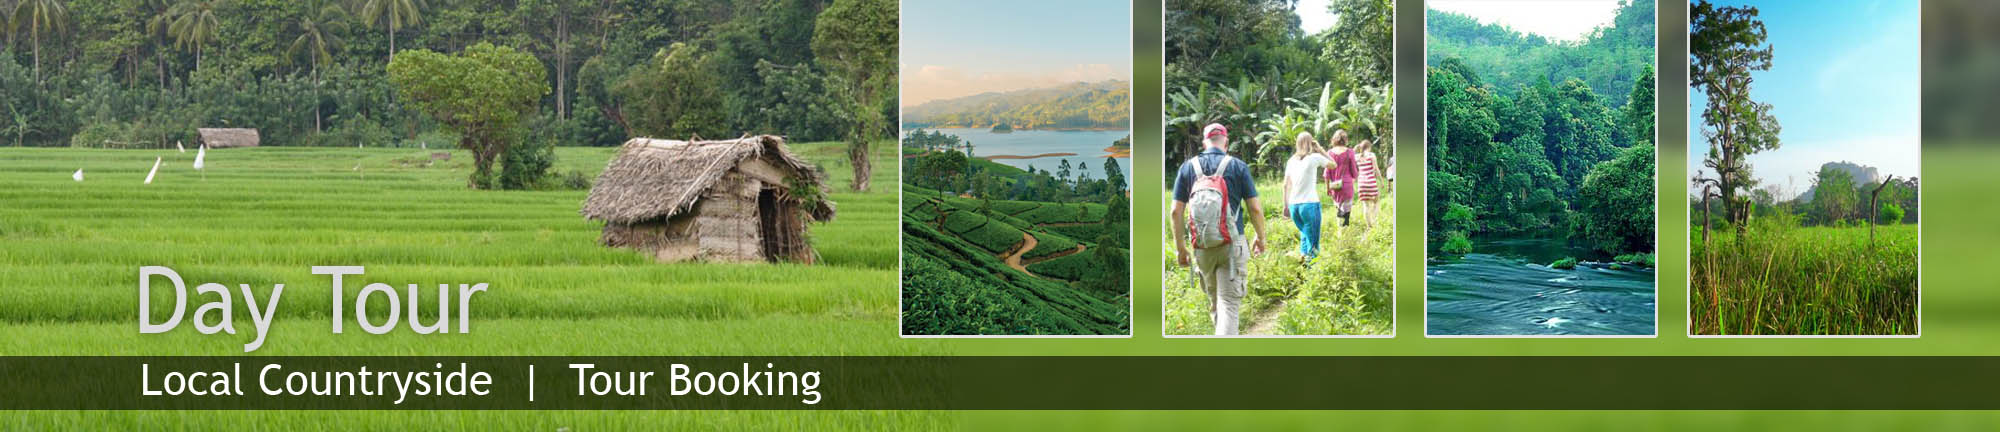 inora-travel-lanka-day-tour-form-banner-local-countryside